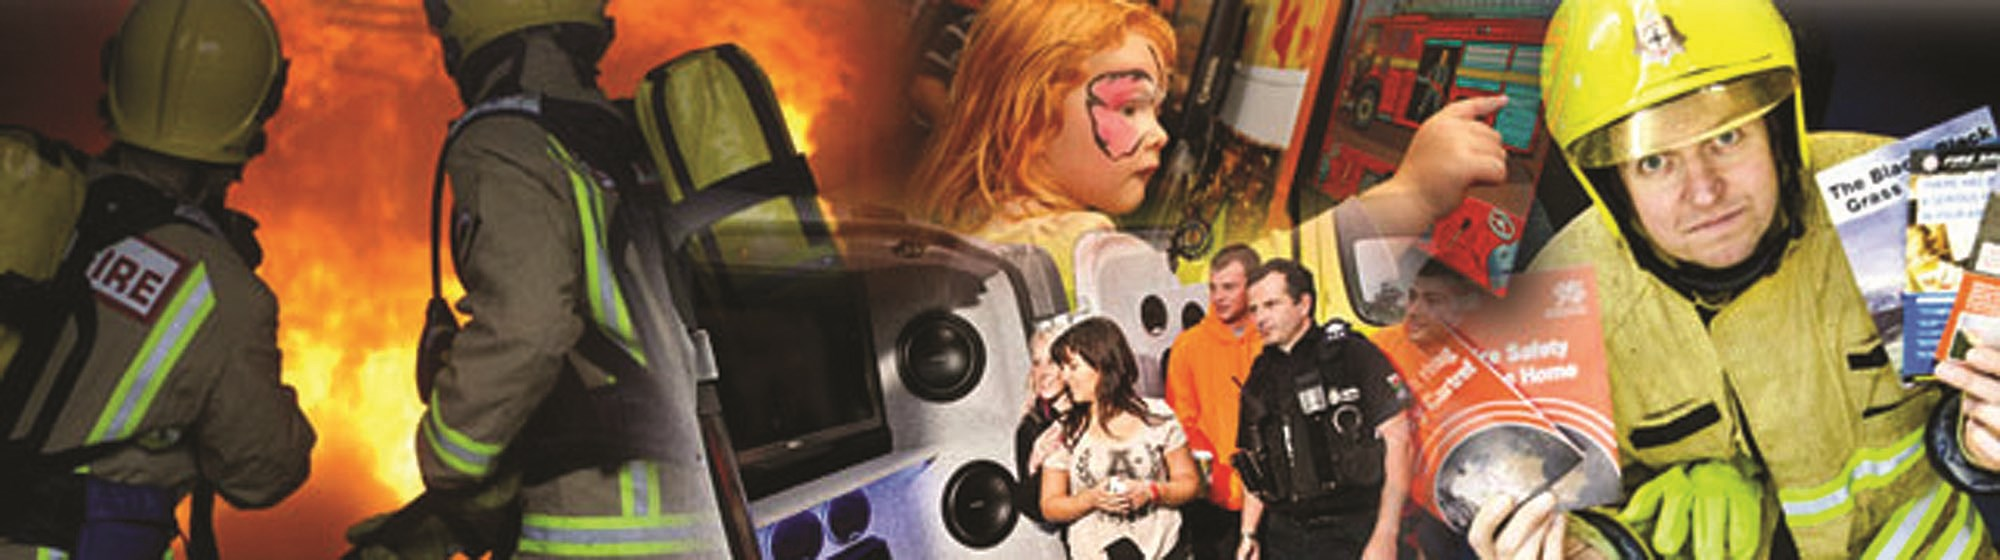 Email encryption improves security